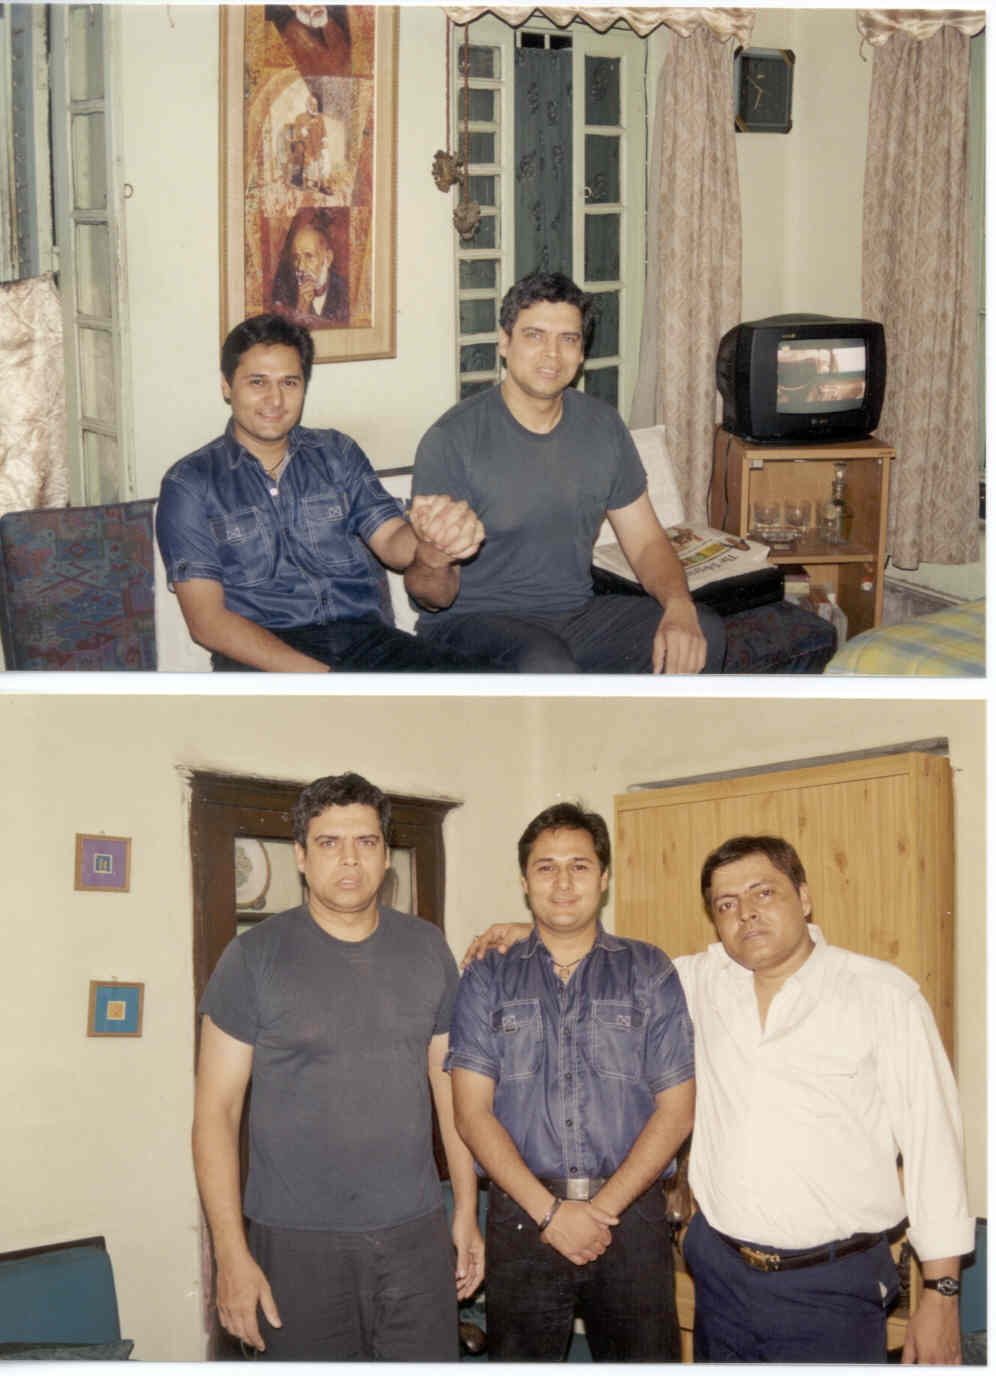 CLICK TO ENLARGE - Myself, with one of my first cousins Rajat (a Flight Attendant with Indian Airlines, training to be a Commercial Pilot); and my brother Guddu